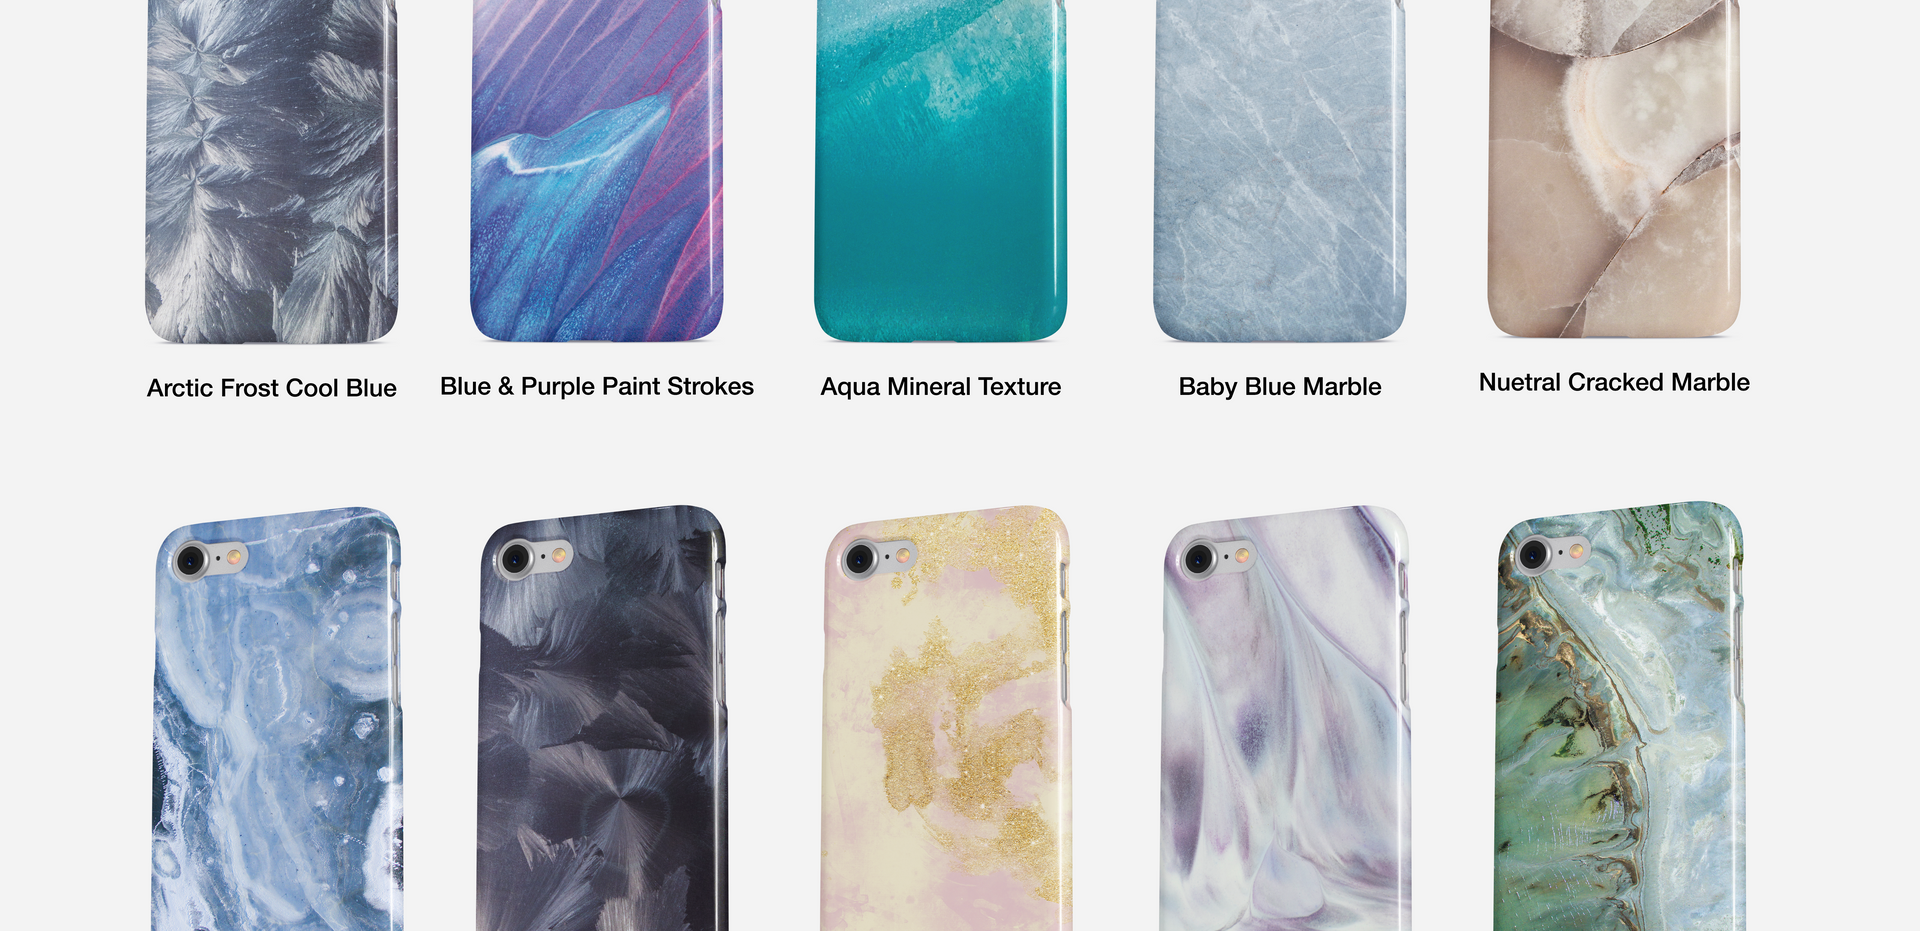 Amazon Phone Case Distributor Product Designs by Kaitlynn Stone